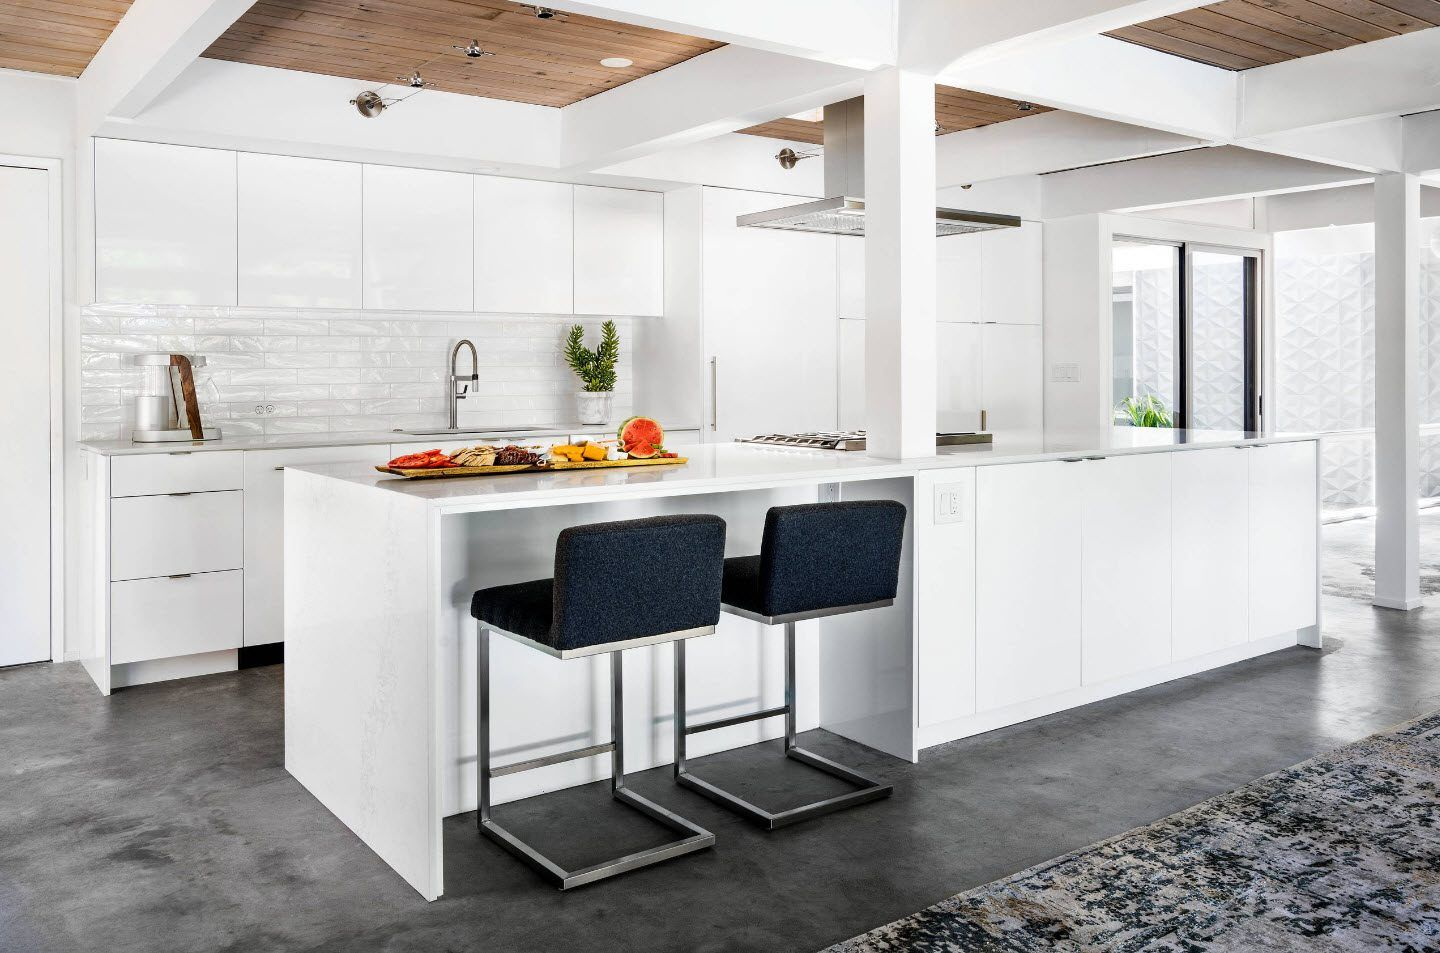 120 Square Feet Kitchen Interior Design Ideas with Photos. Black metal framed chairs at the bar counter